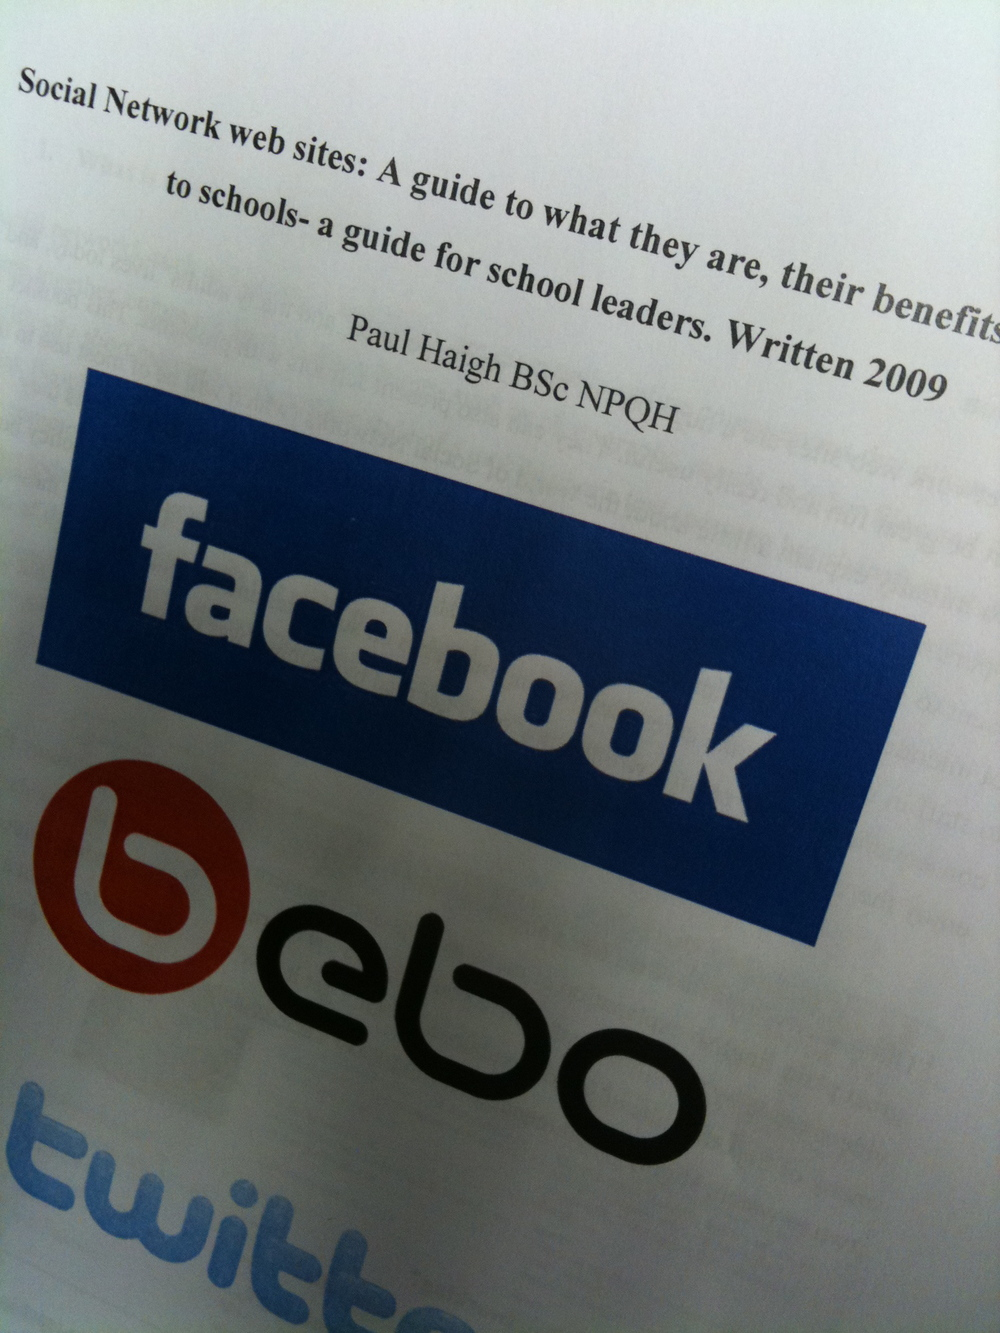 From my year learning my skills a teacher. Always amused me that an article written for teachers in 2009 had Bebo as one of the social networks - potentially slightly out of touch?!